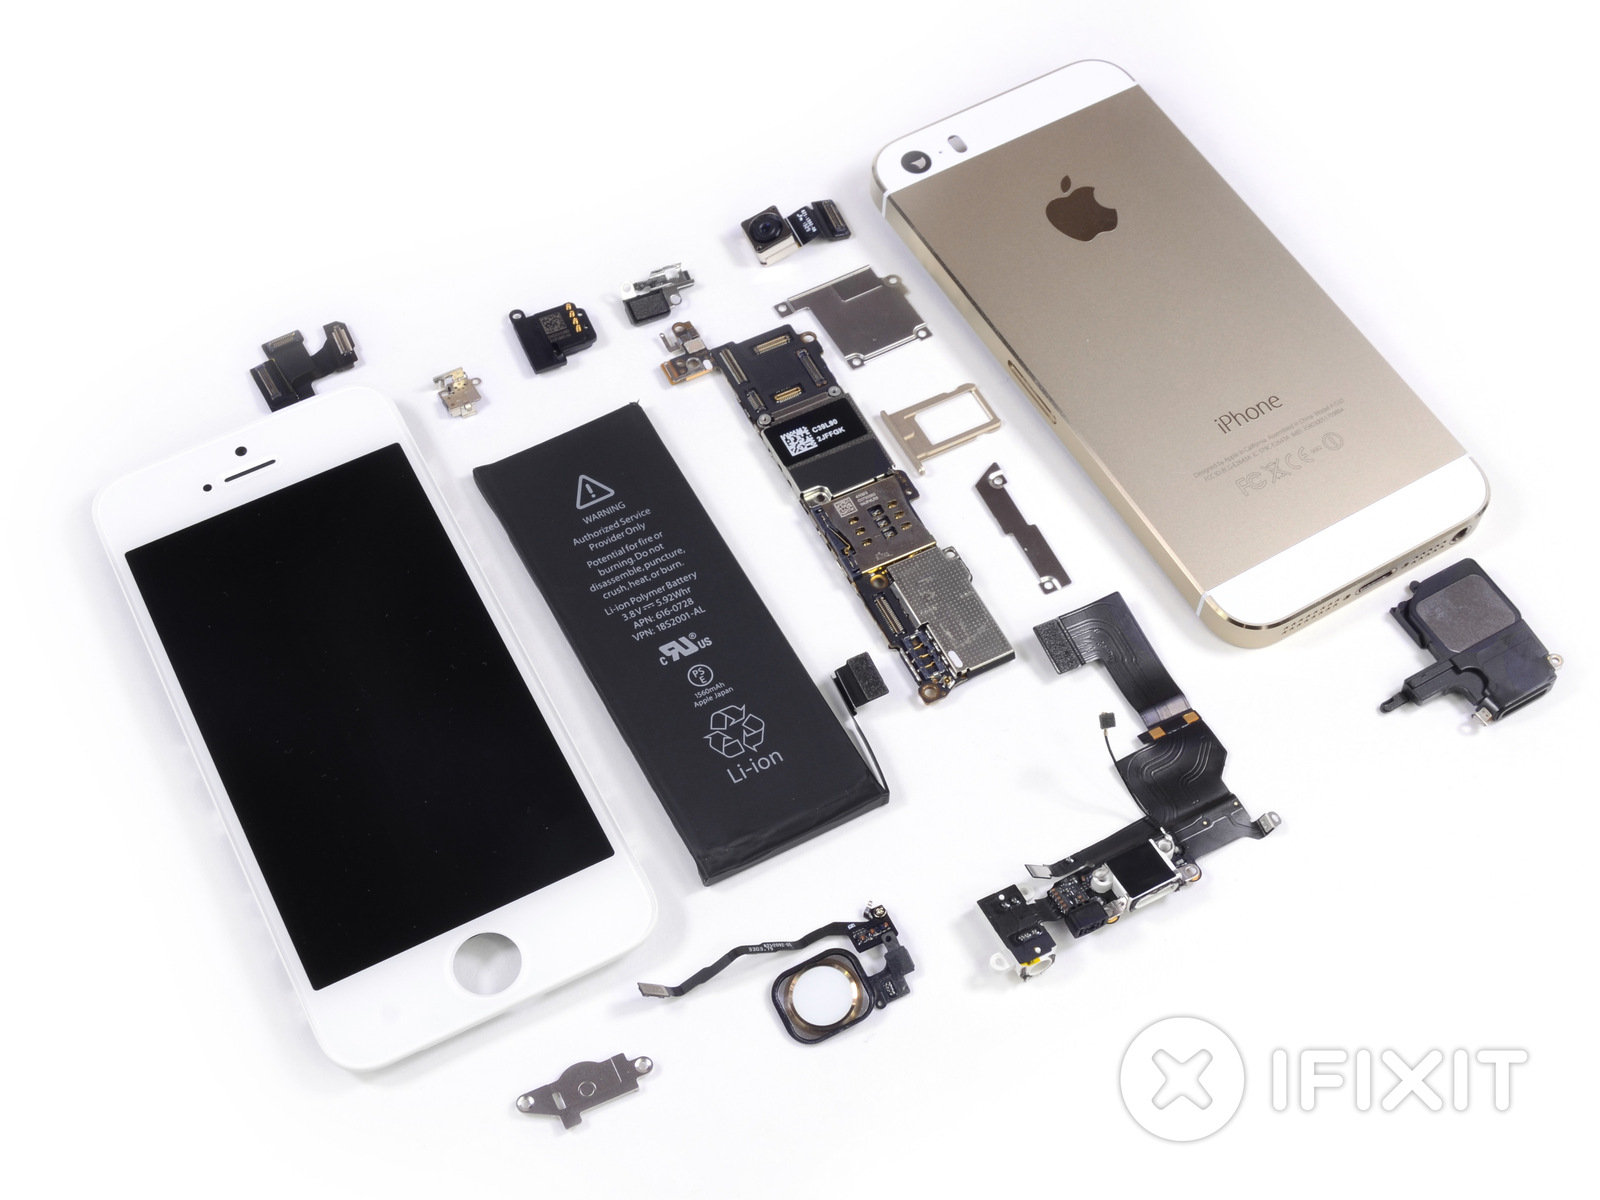 Apple Stores Set To Offer iPhone 5s, iPhone 5c Screen Repairs And More